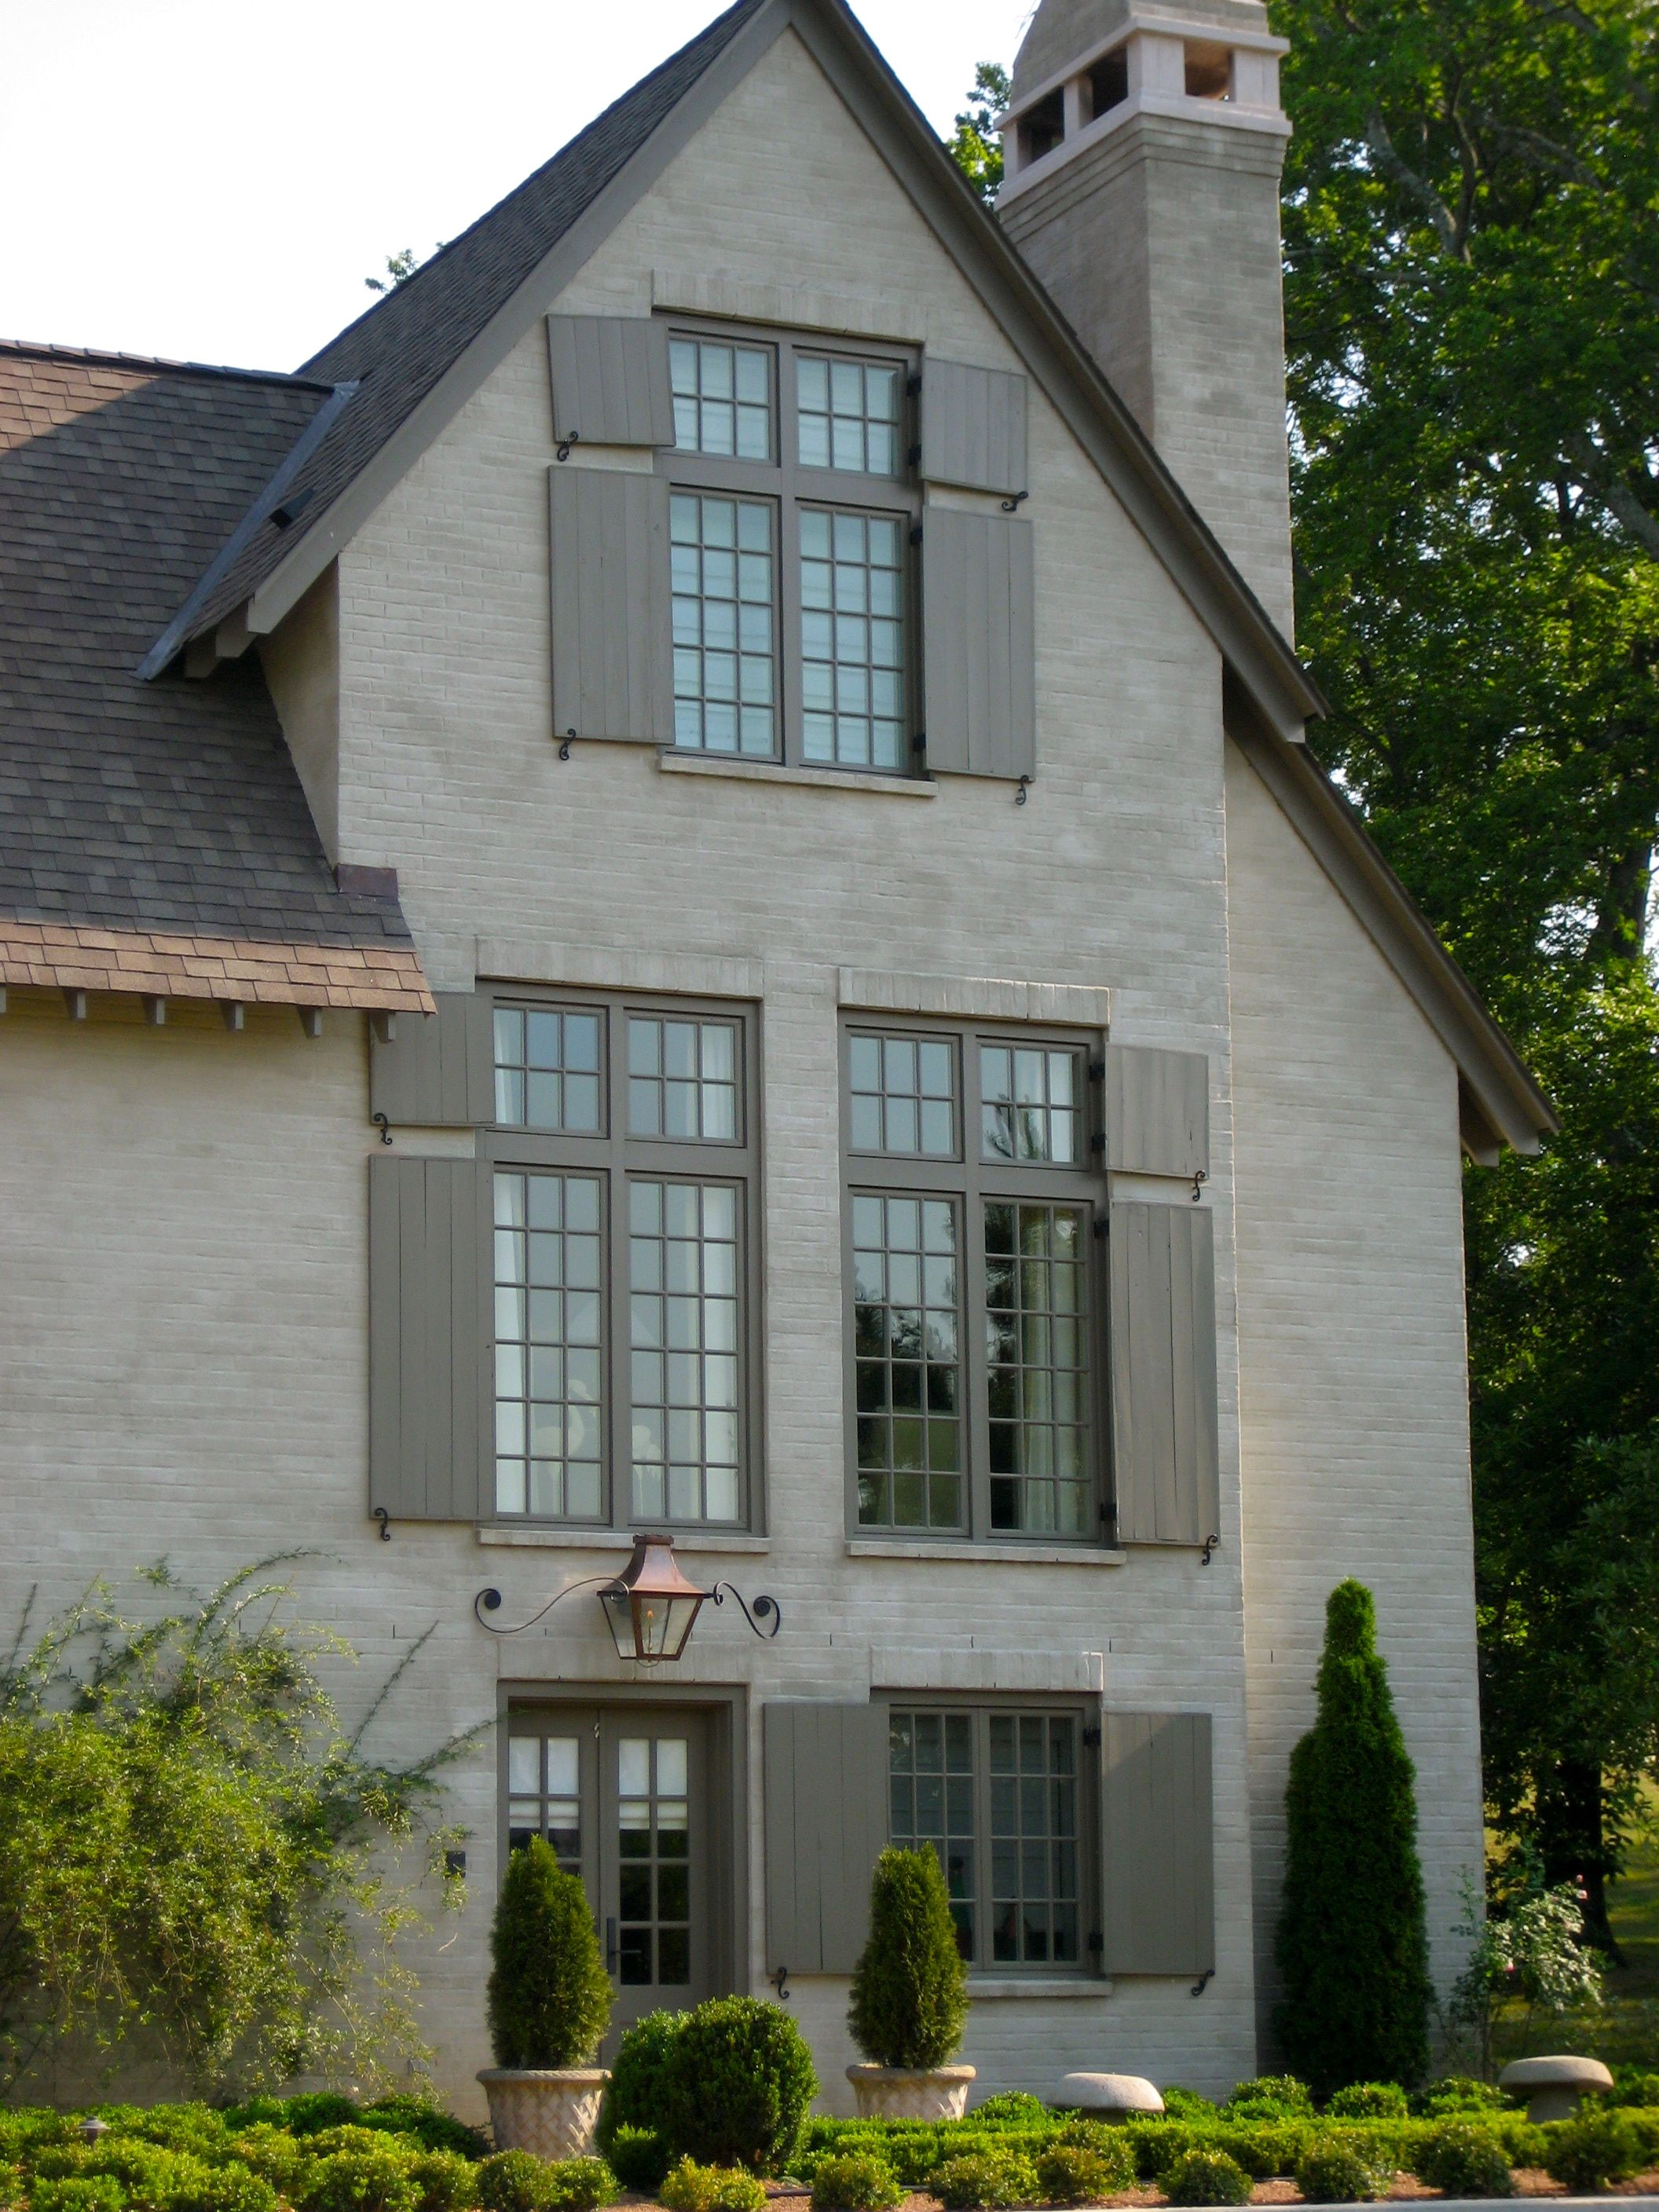 Architecture Inspiration On Pinterest Belgian Style Villas And Buxus